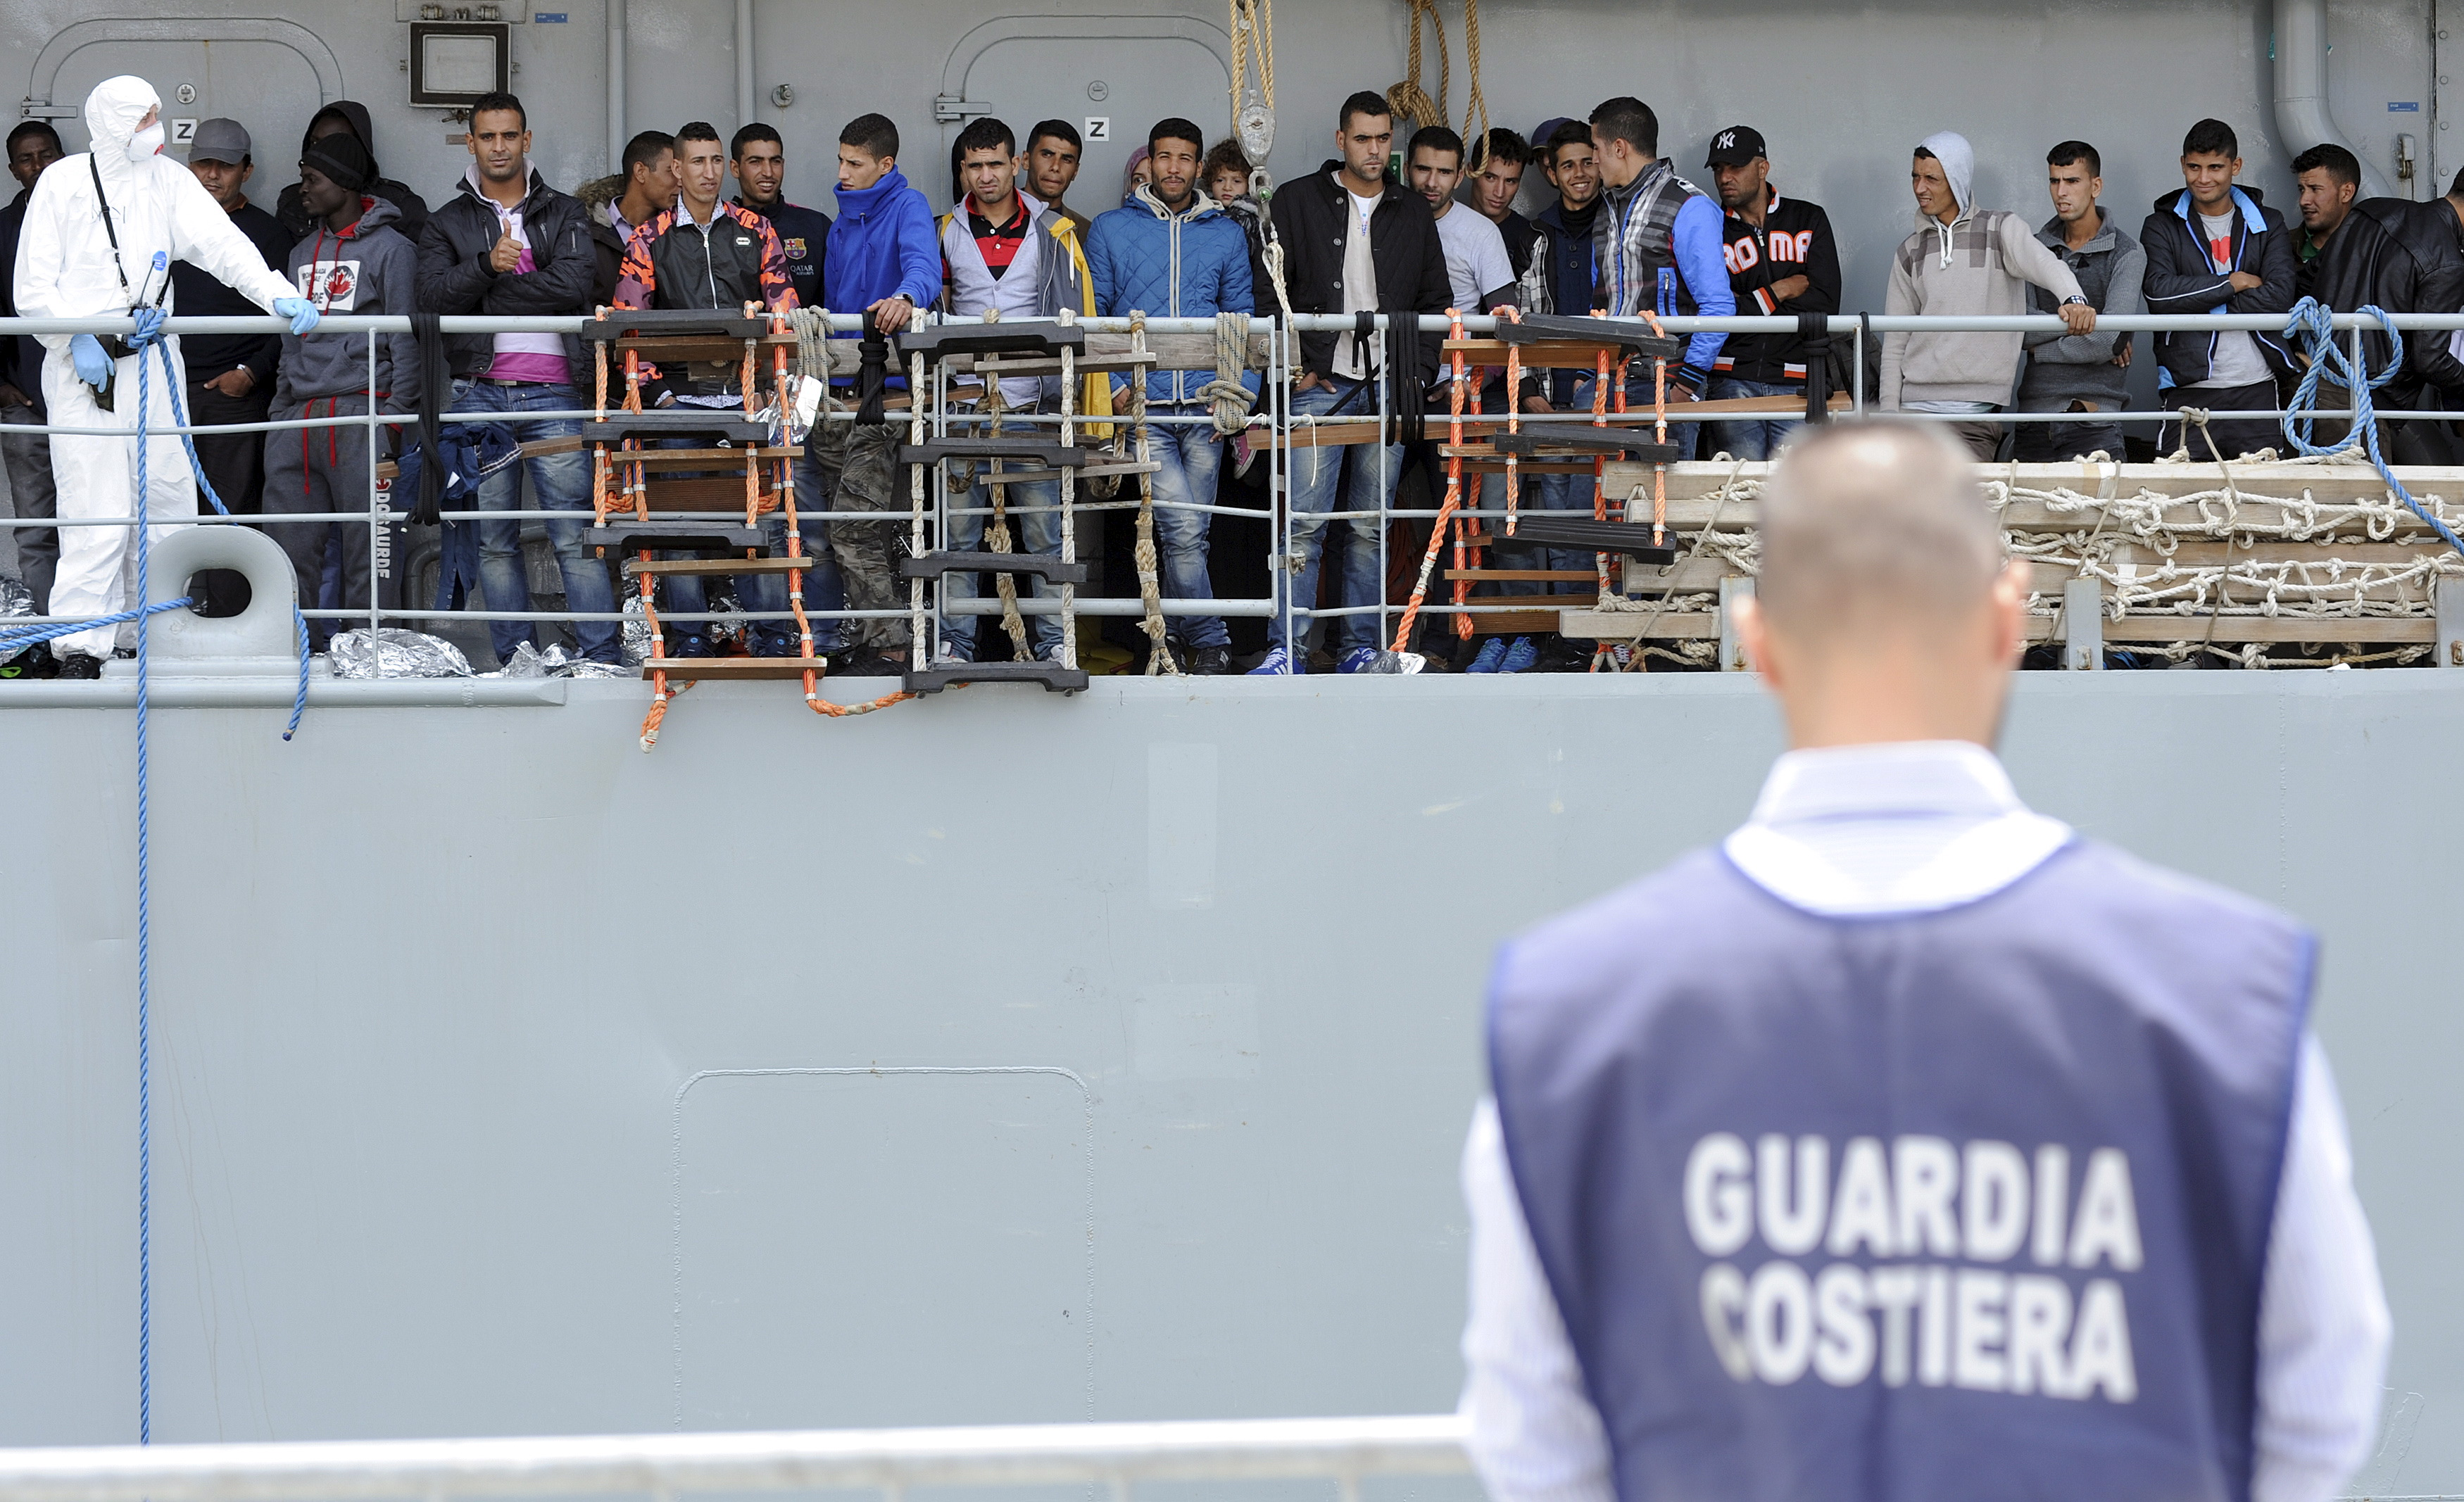 Migrants wait to disembark from the Irish navy ship LÉ Eithne as they arrives in the Sicilian harbour of Palermo, Italy, May 30, 2015. Photo by Guglielmo Mangiapane/Reuters